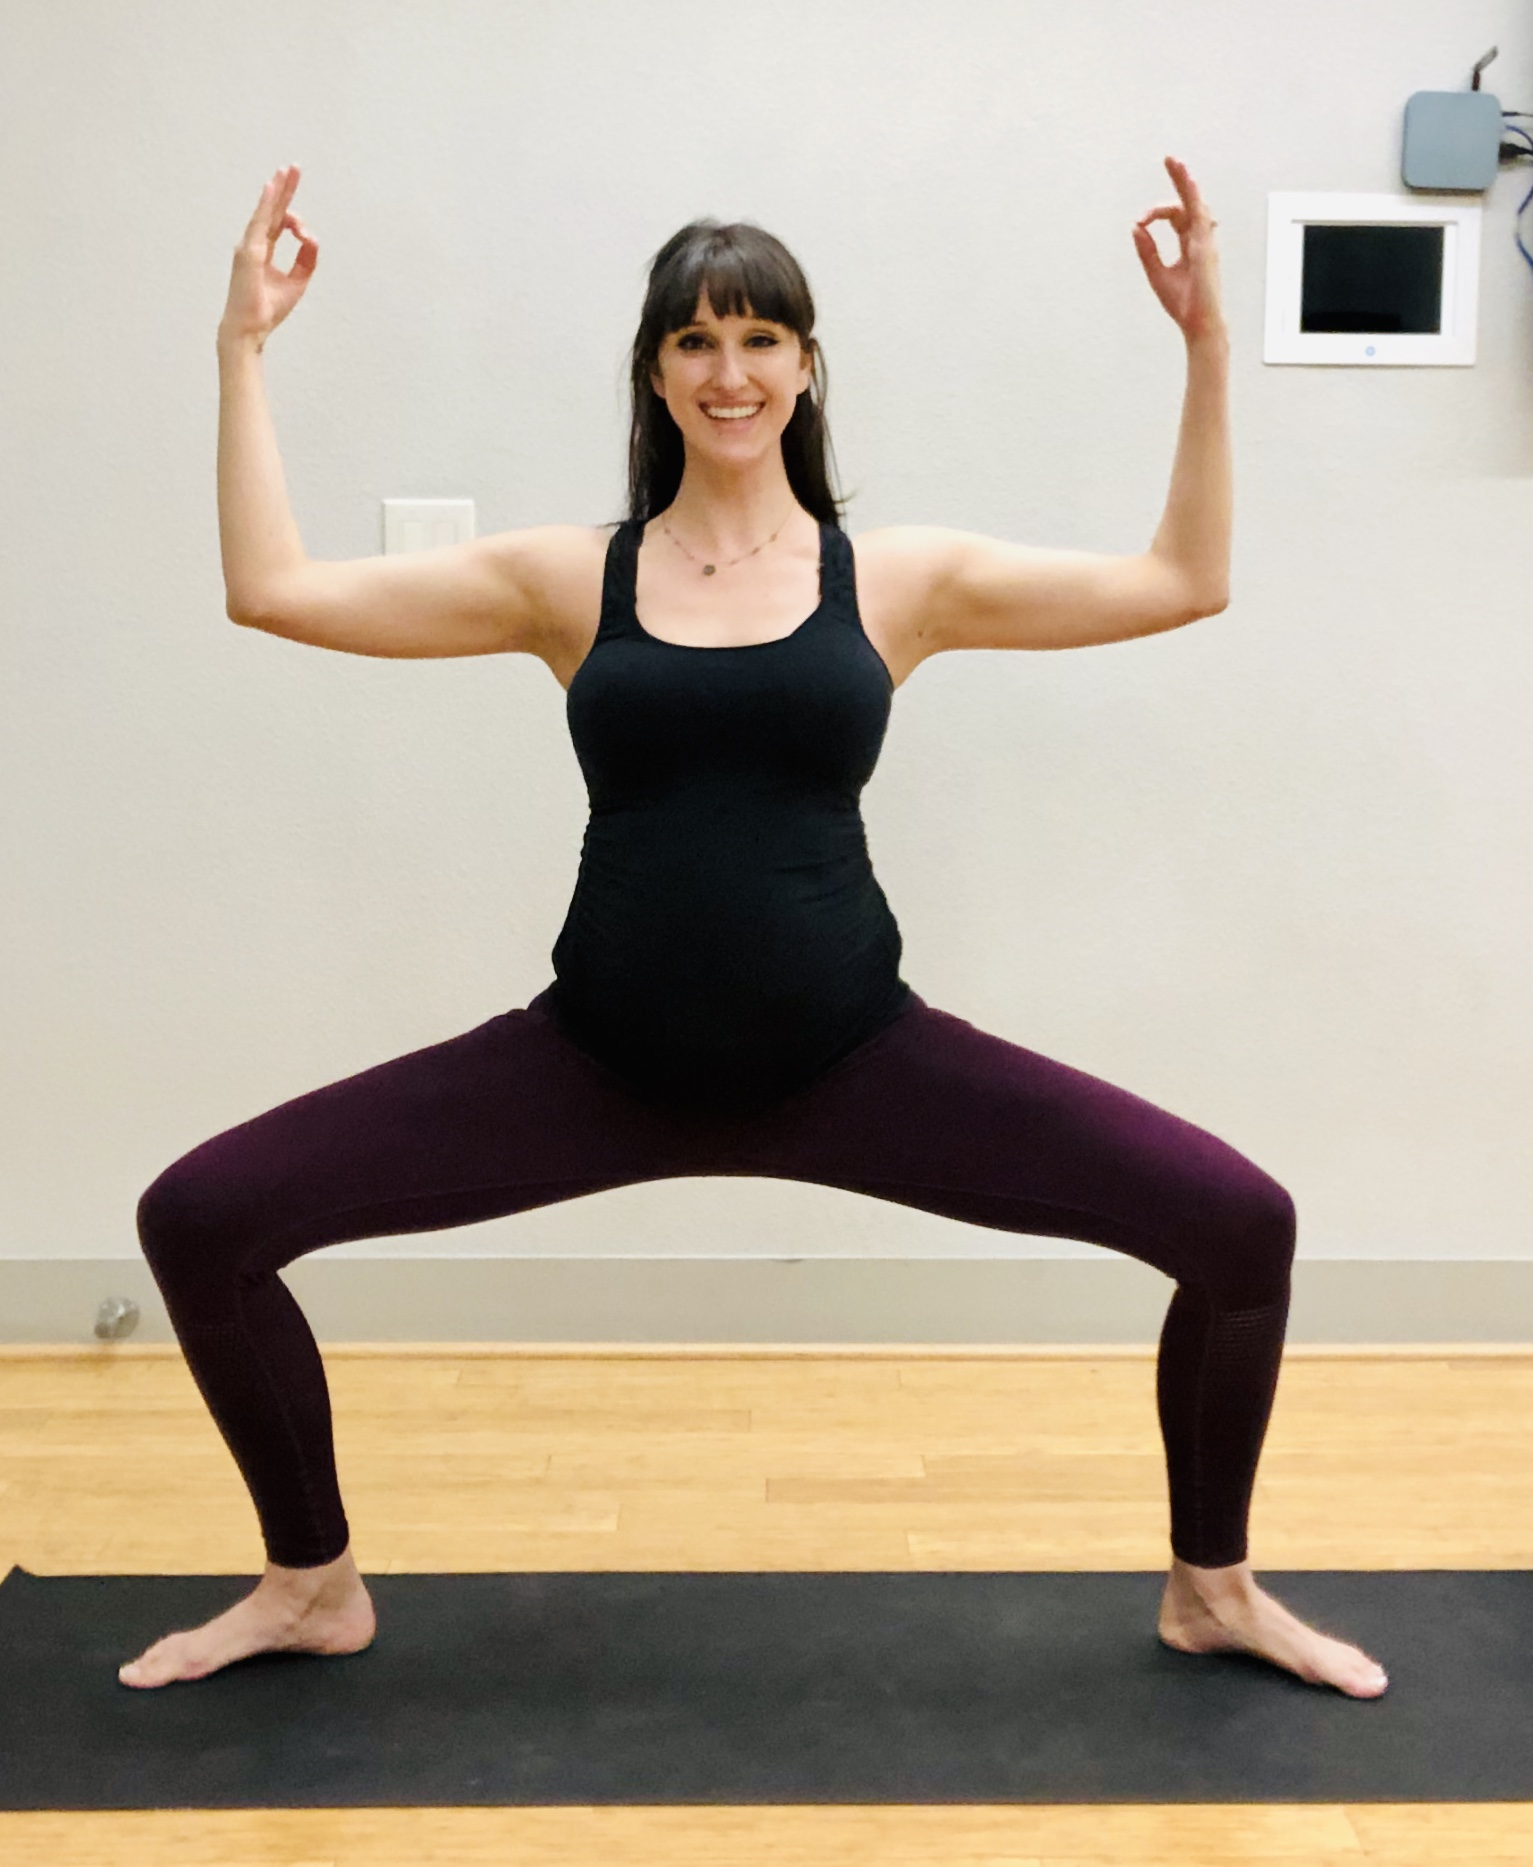 Goddess Pose. Heels in, toes out. Knees stacked over ankles.